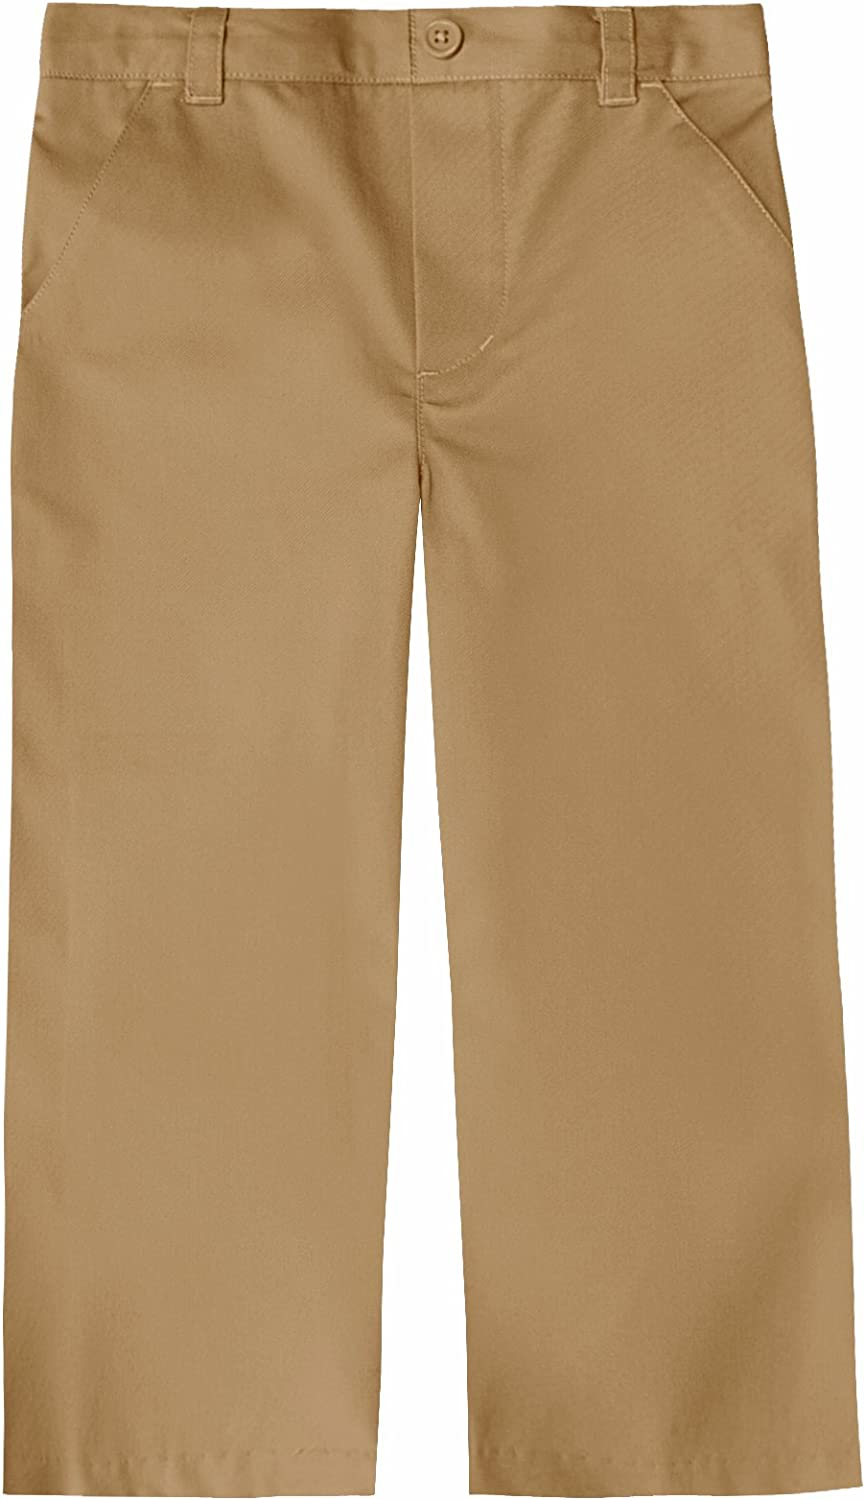 Classroom Toddler Uniform Unisex Pull-On Pant with Faux Fly